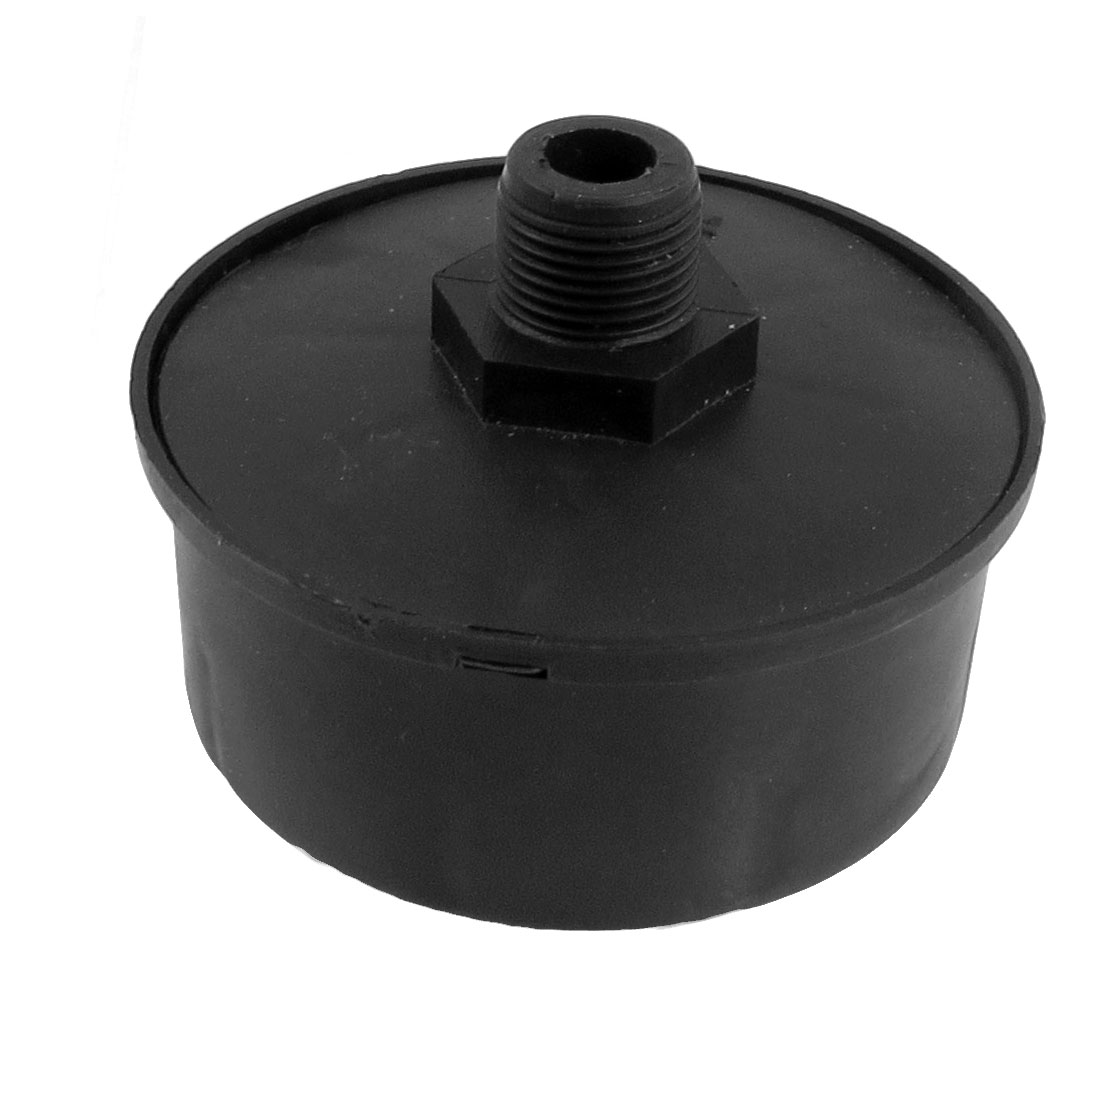 Air Compressor Black Plastic 16mm Thread Filter Muffler